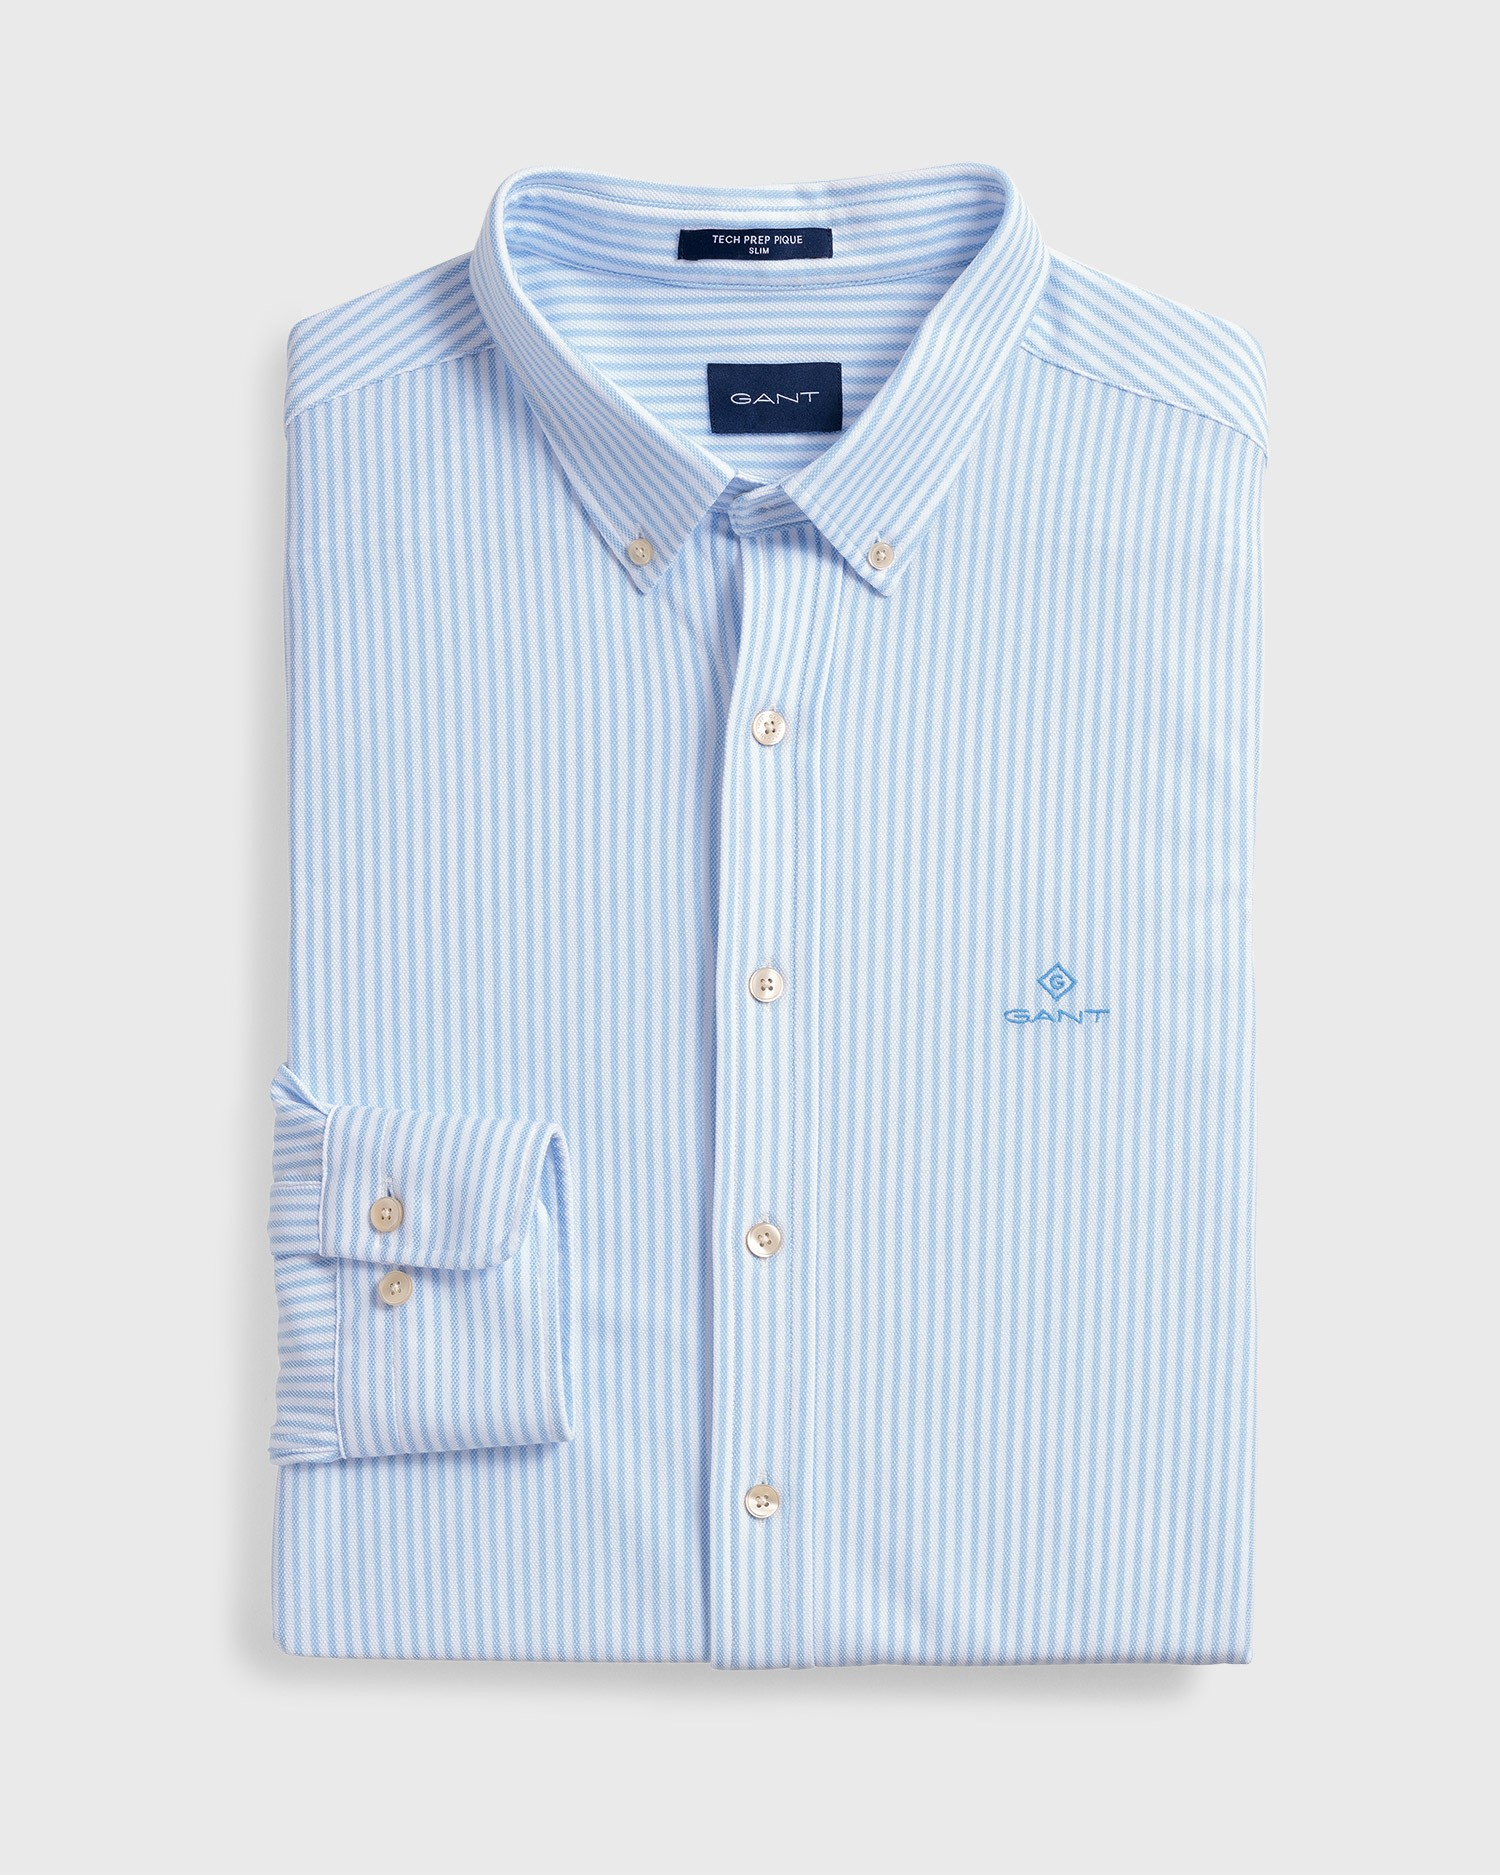 GANT Men's Stripe Slim Fit Shirt - 3003462